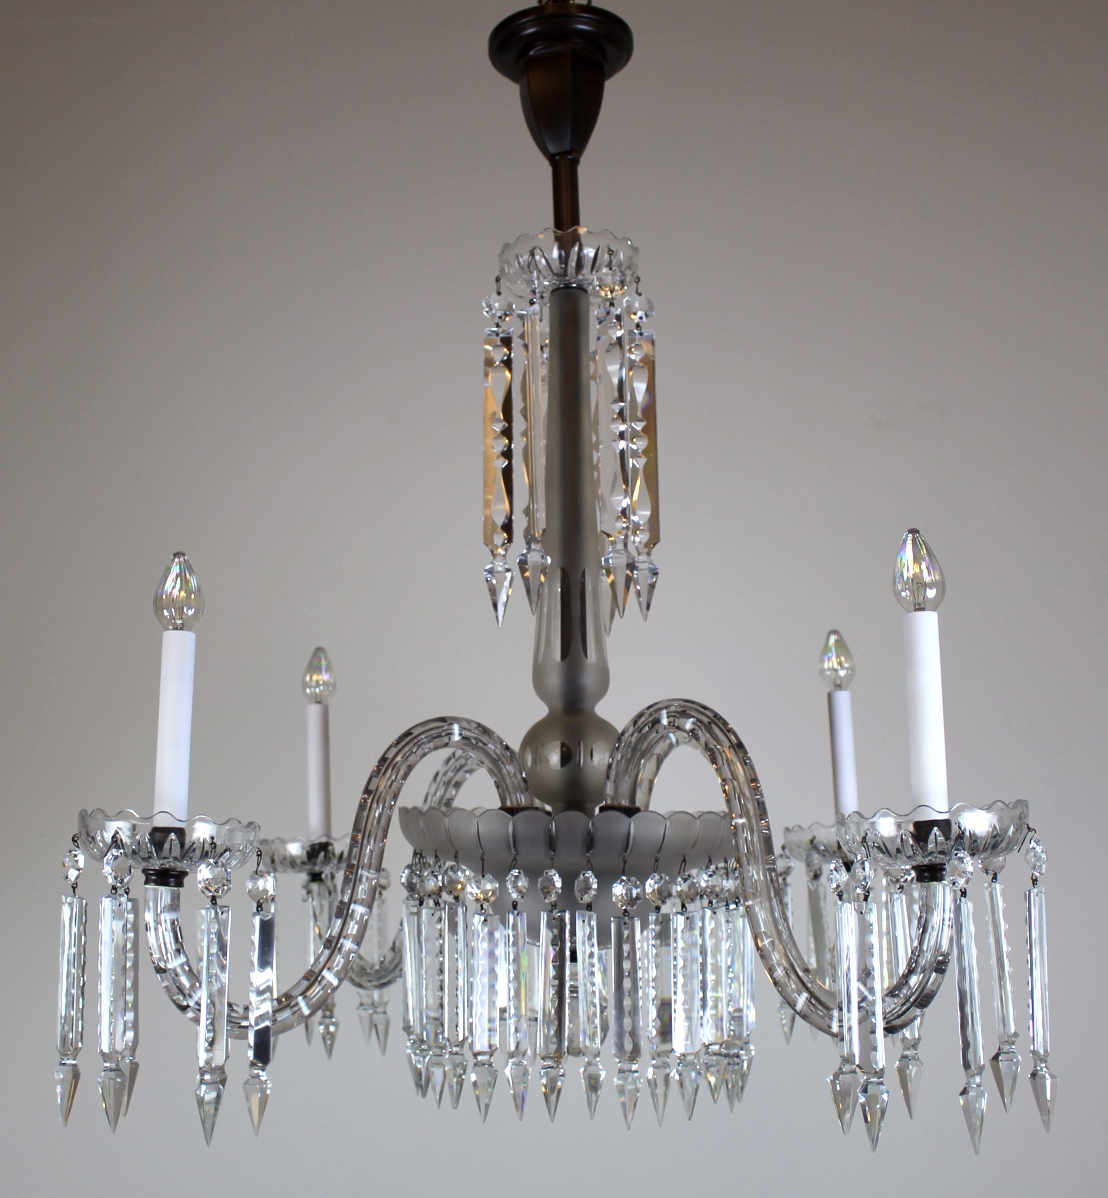 See more: Antique Ceiling Lights, Antique Chandeliers, Antique Lighting,  Featured Items, Latest Antiques. - 4 Arm Victorian Crystal Chandelier. |